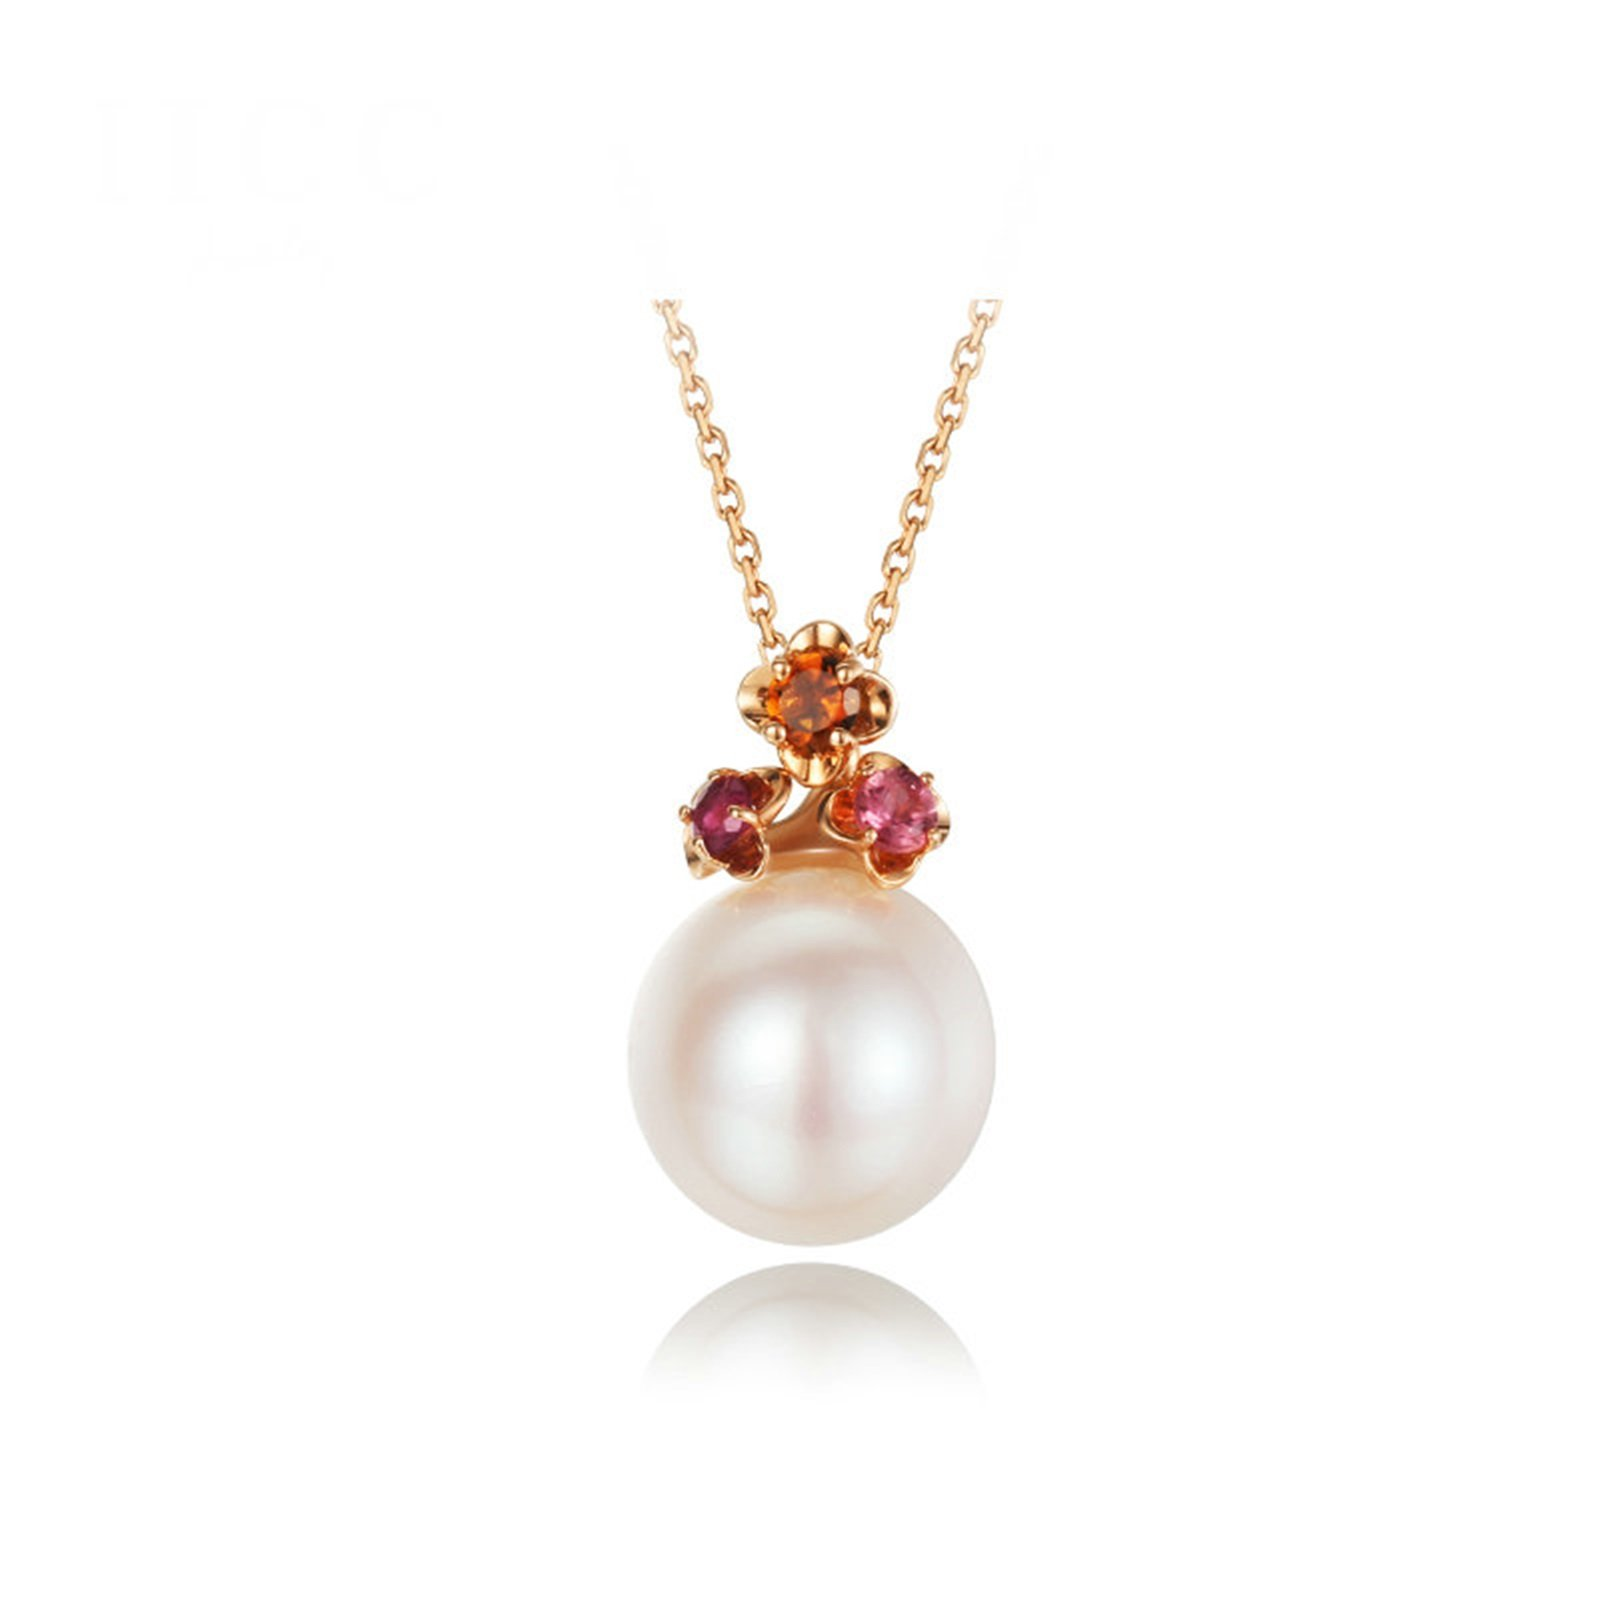 Daesar 18K Gold Necklace For Women Natural Freshwater Pearls Pendant Necklace Rose Gold Chain Length:40CM